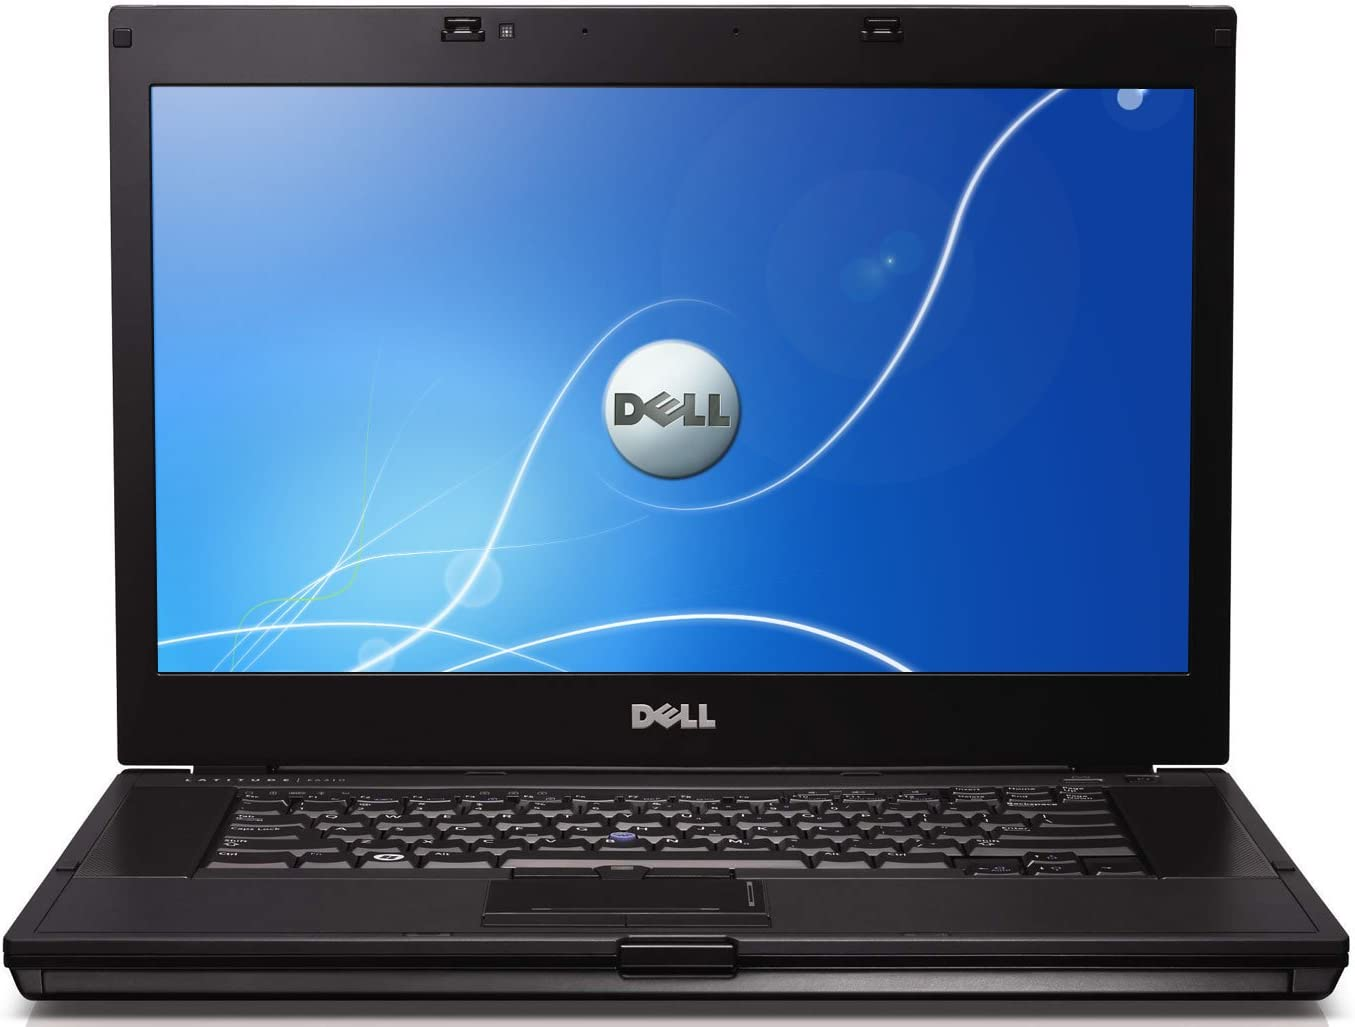 Dell Latitude E6510 15.6 Inch Laptop PC, Intel Core i5-520M up to 2.93GHz, 4G DDR3, 320G, DVD, WiFi, VGA, DP, Windows 10 Pro 64 Bit Multi-Language Support English/French/Spanish(Renewed)